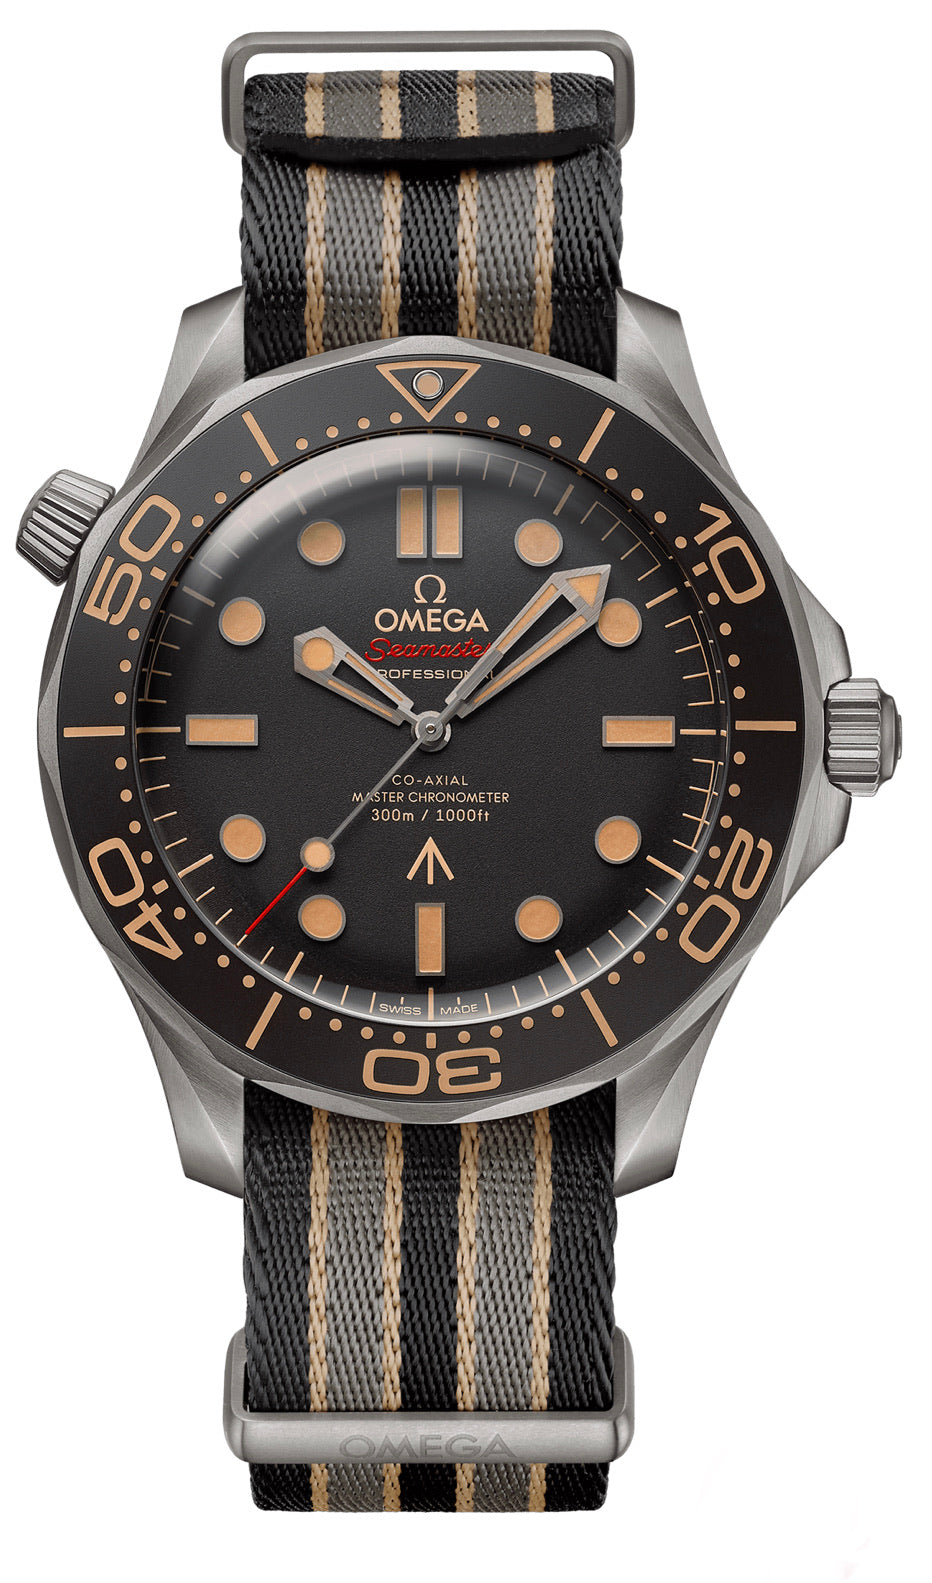 Omega seamaster Seamaster DIVER 300M OMEGA CO‑AXIAL MASTER CHRONOMETER 42 MM 007 Edition 210.92.42.20.01.001